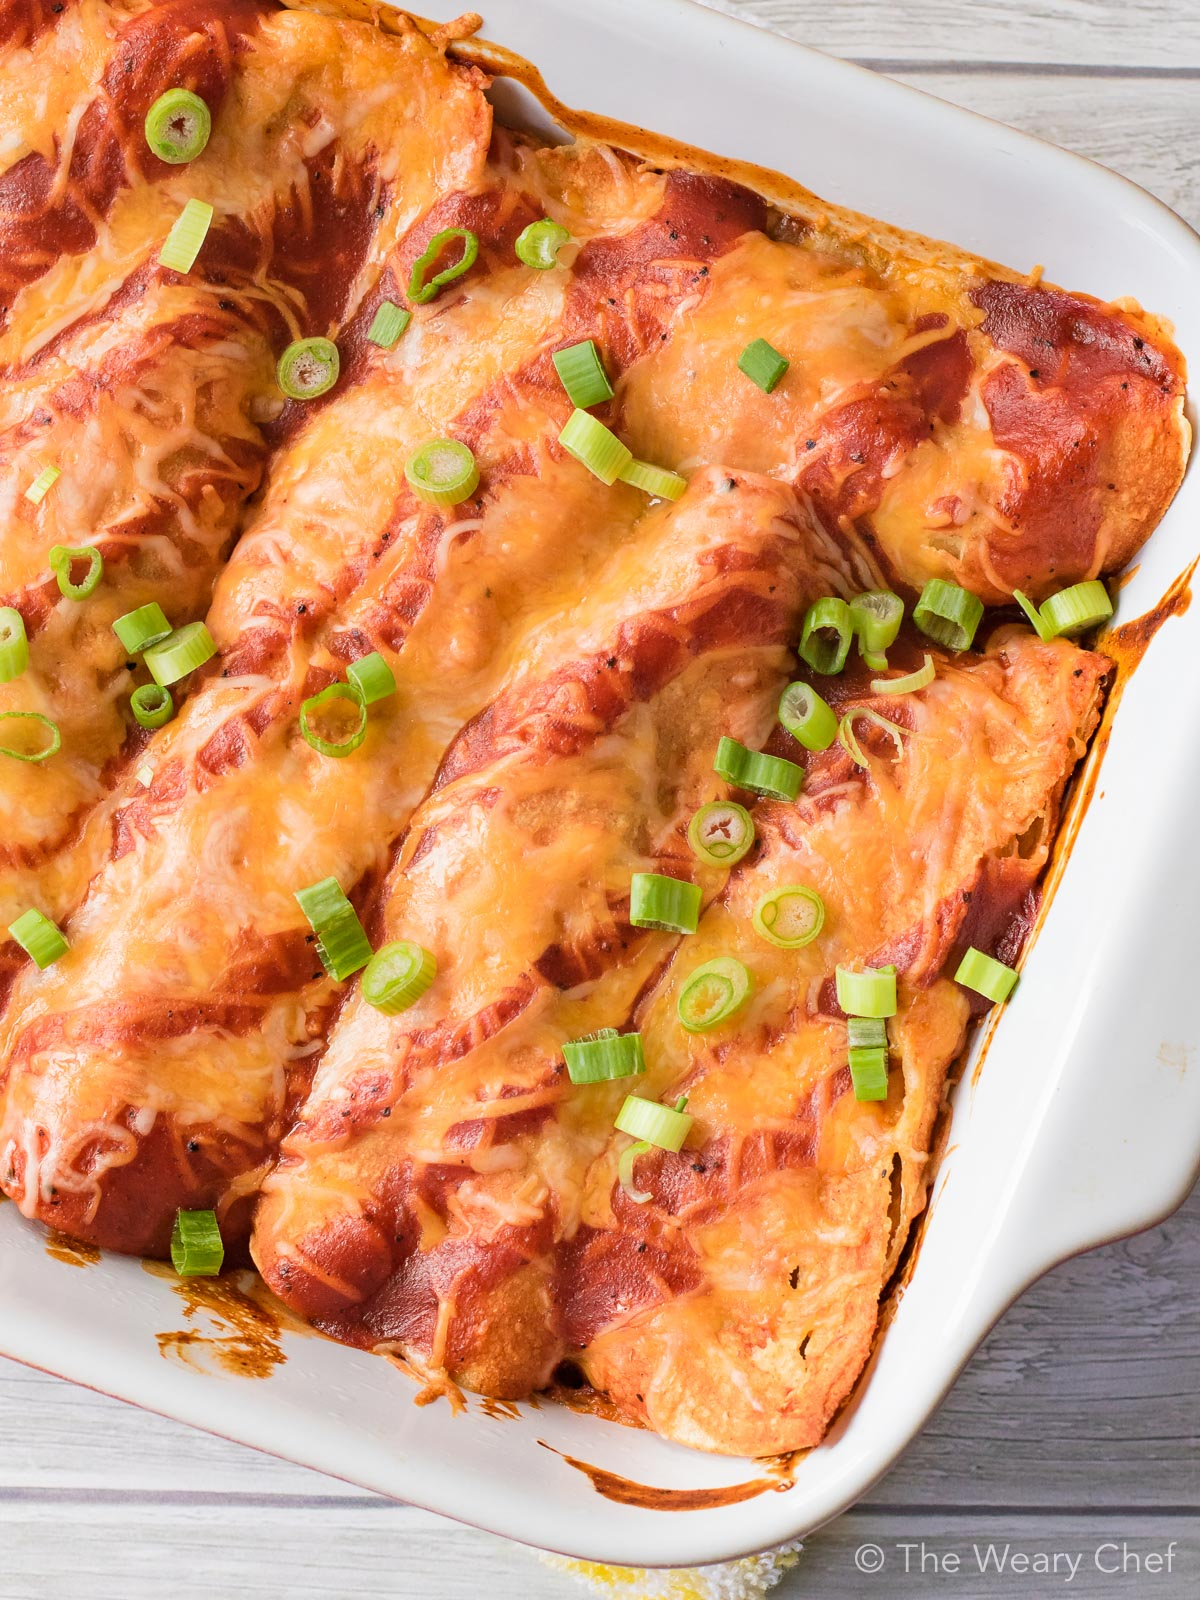 BBQ Brisket Enchiladas are the best way to enjoy your leftover brisket this Fourth of July! Make a low and slow beef brisket this weekend, and use the leftovers in this fast weeknight recipe.